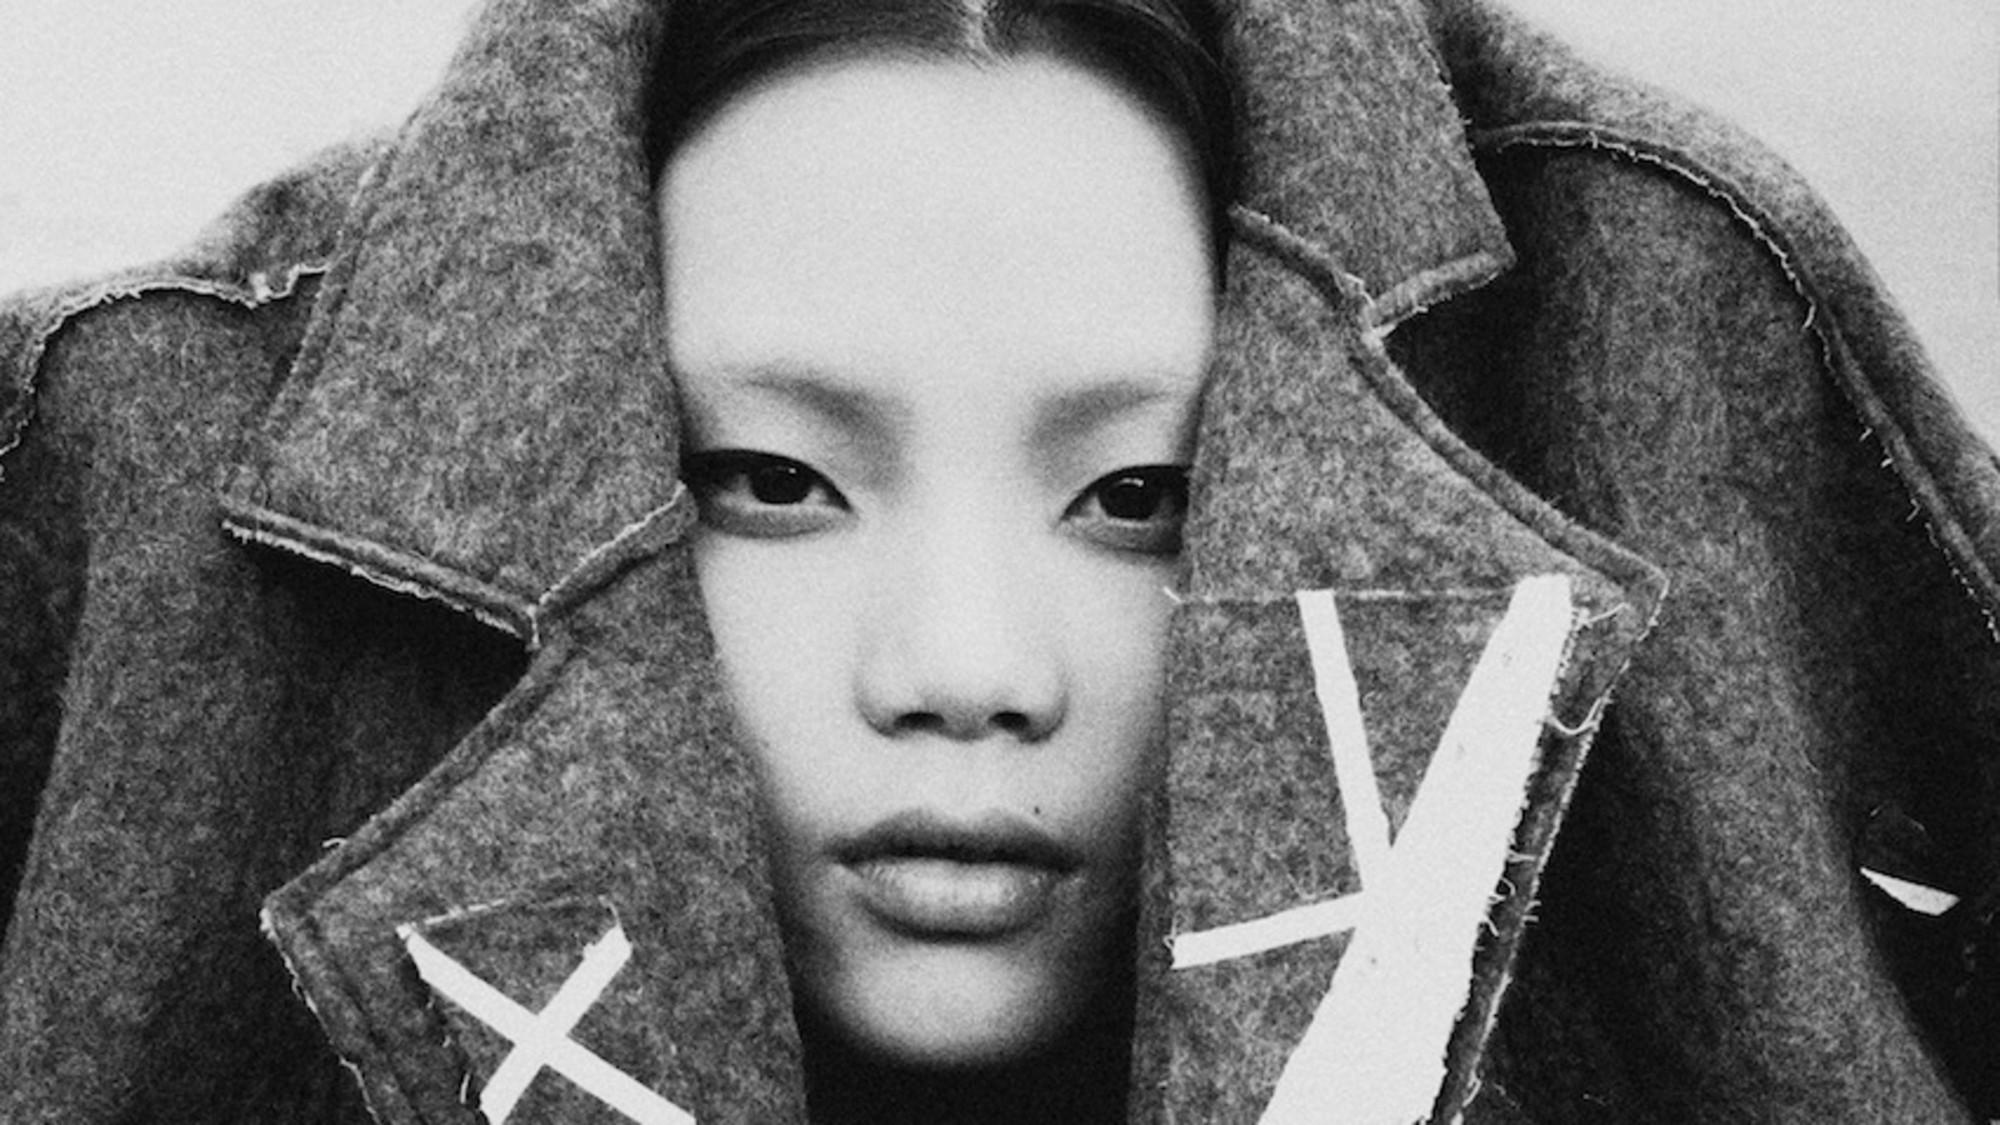 Get to know China's burgeoning fashion scene in @thamesandhudson's new book: http://t.co/JpTKc21mth http://t.co/5o0i4iy8Iq